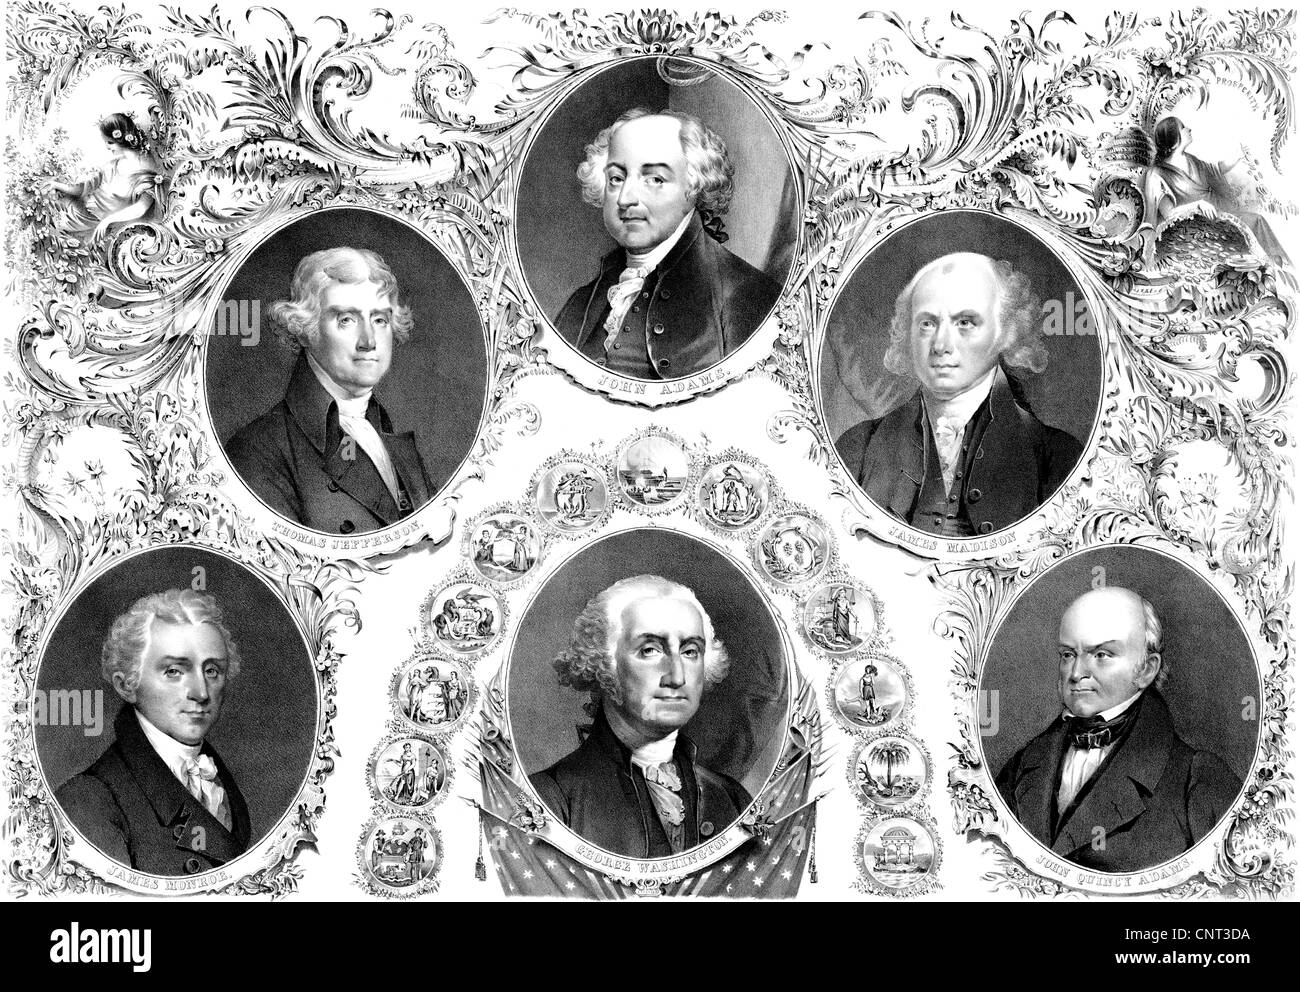 Vintage American history print showing the first six Presidents of The United States of America. - Stock Image